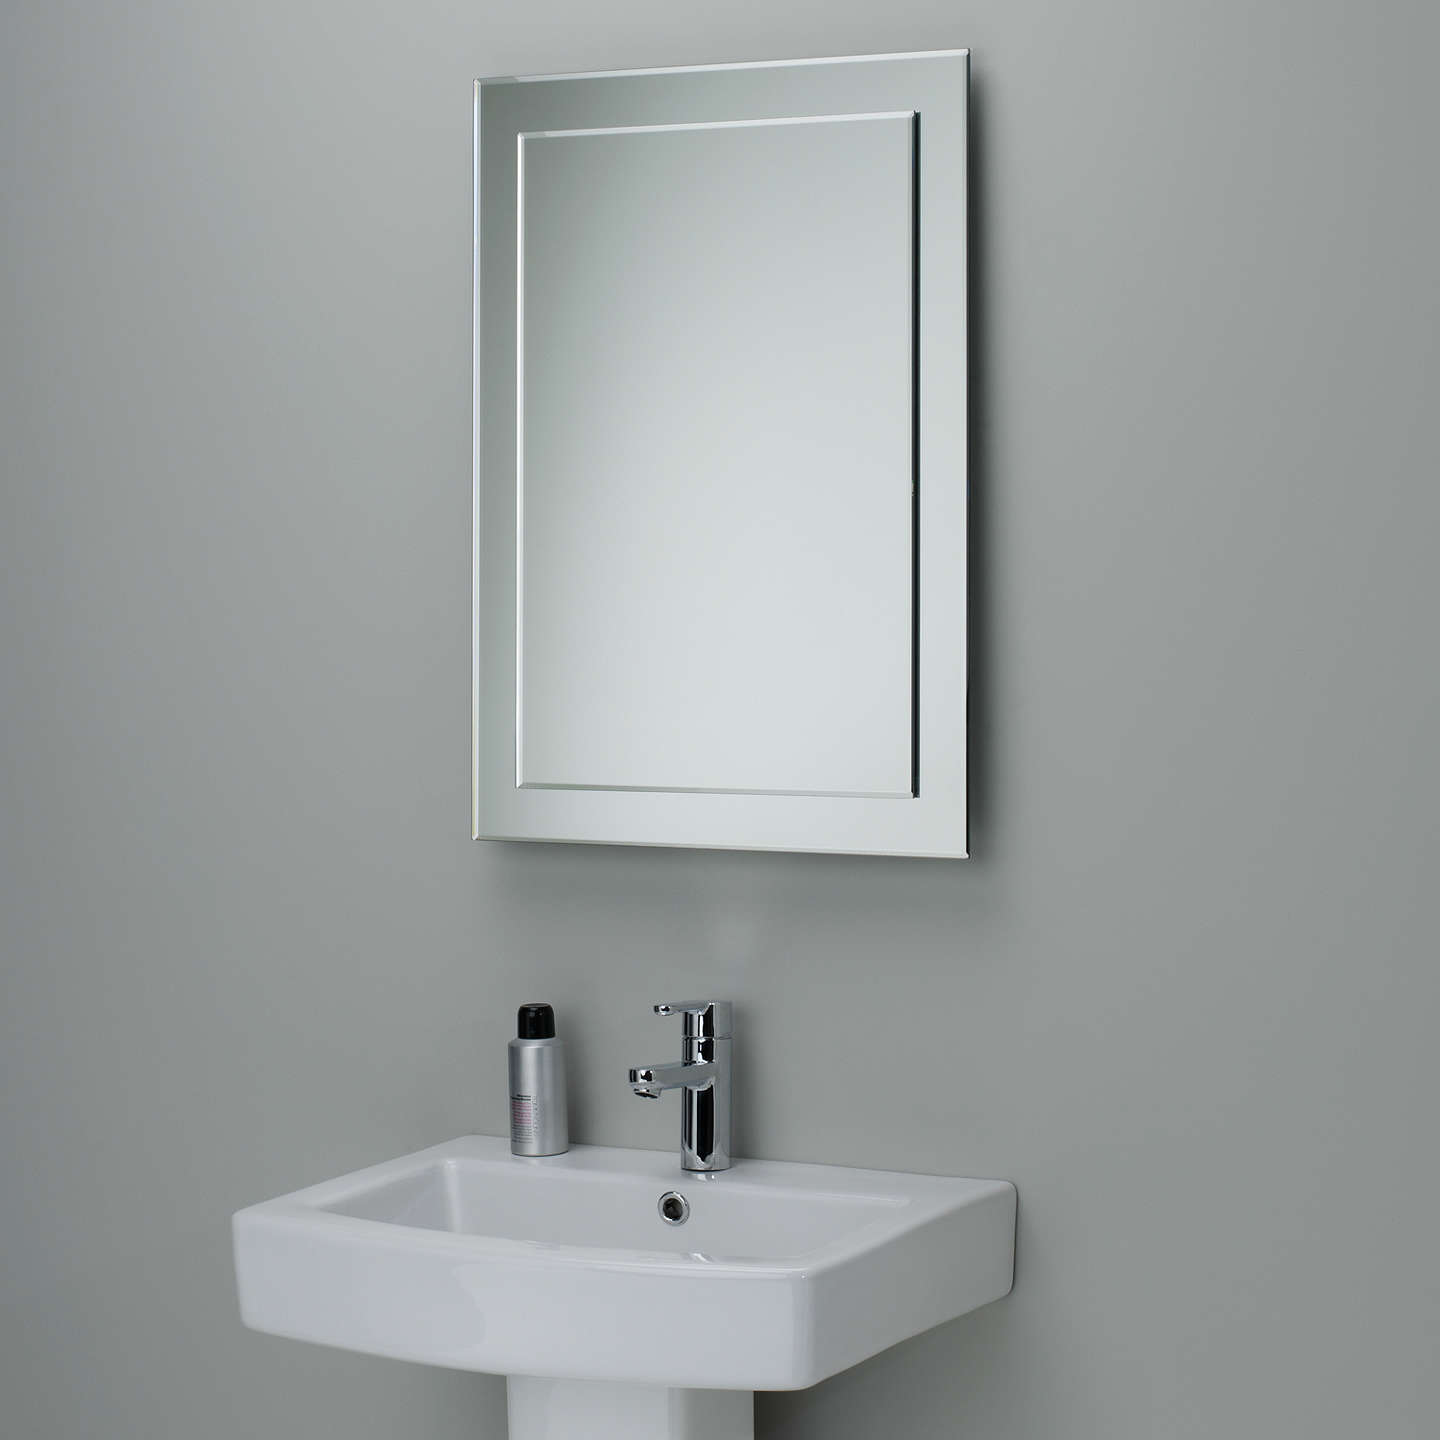 John Lewis Duo Wall Bathroom Mirror 70 X 50cm At John Lewis